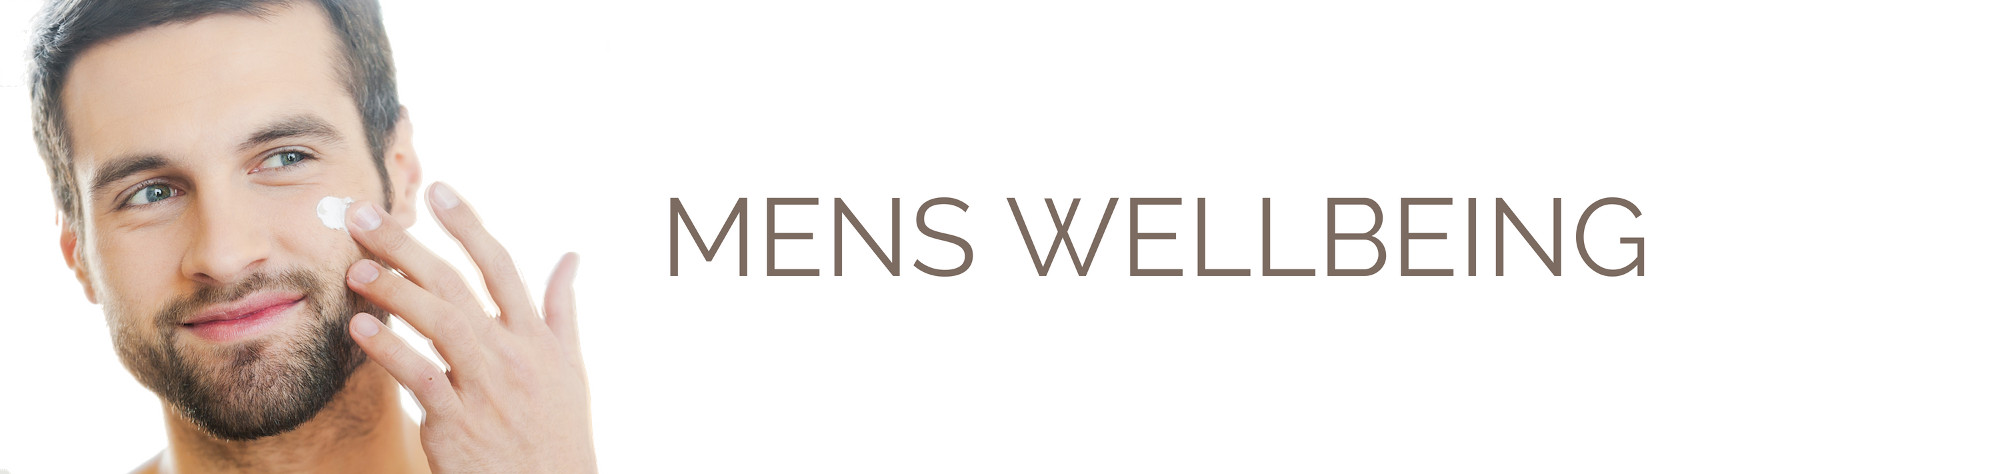 Mens Wellbeing Banner